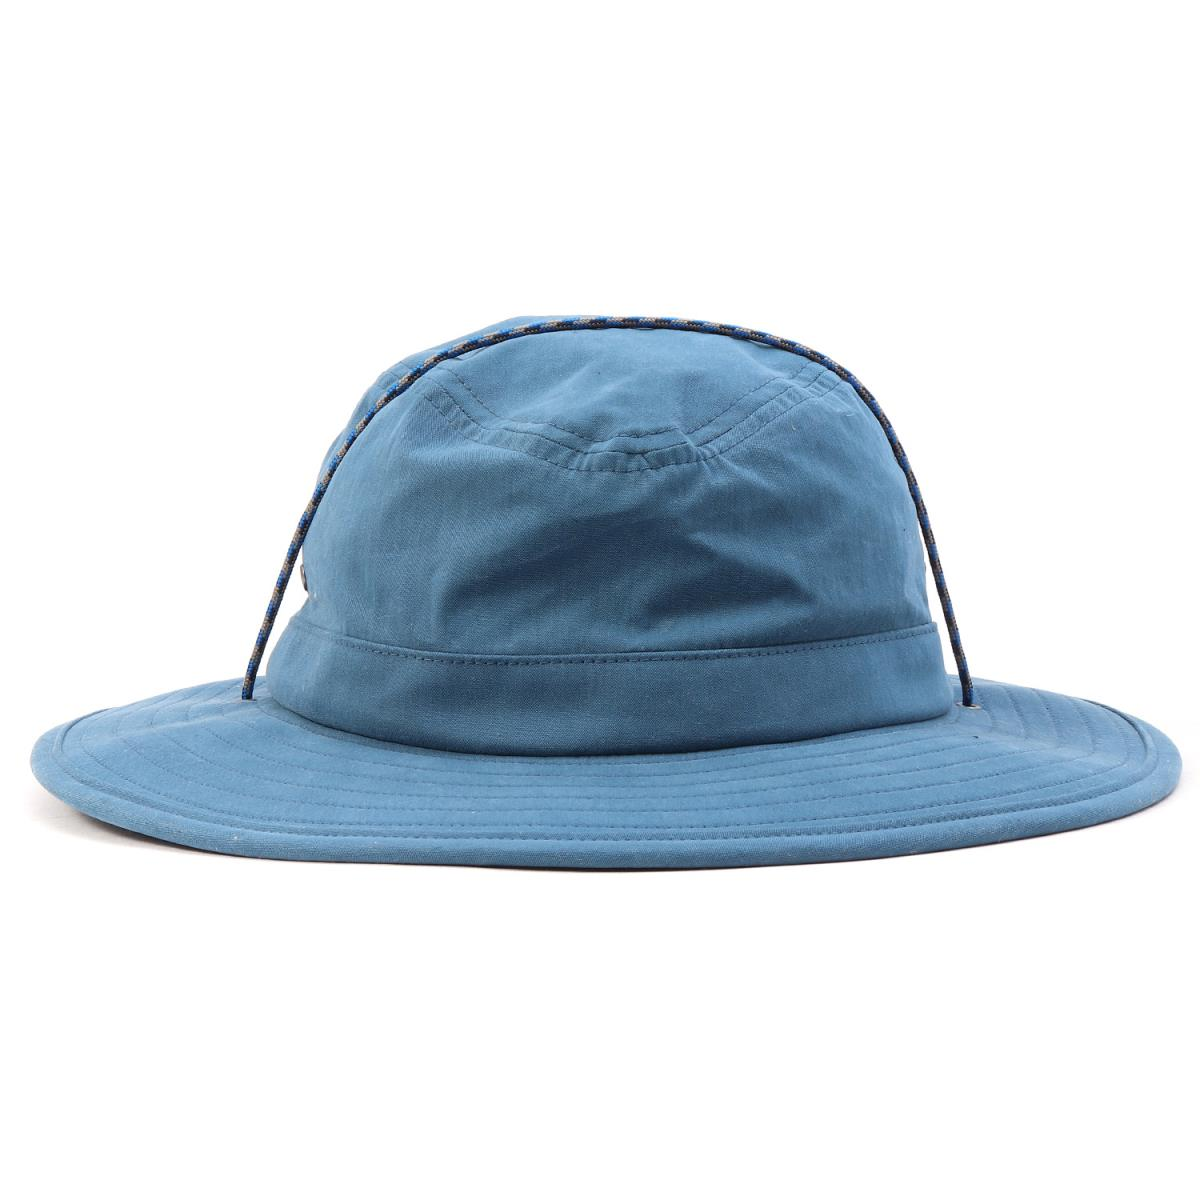 33de09494f35f Patagonia (Patagonia) 17S S tempe knee hat (TENPENNY HAT) glass blue S